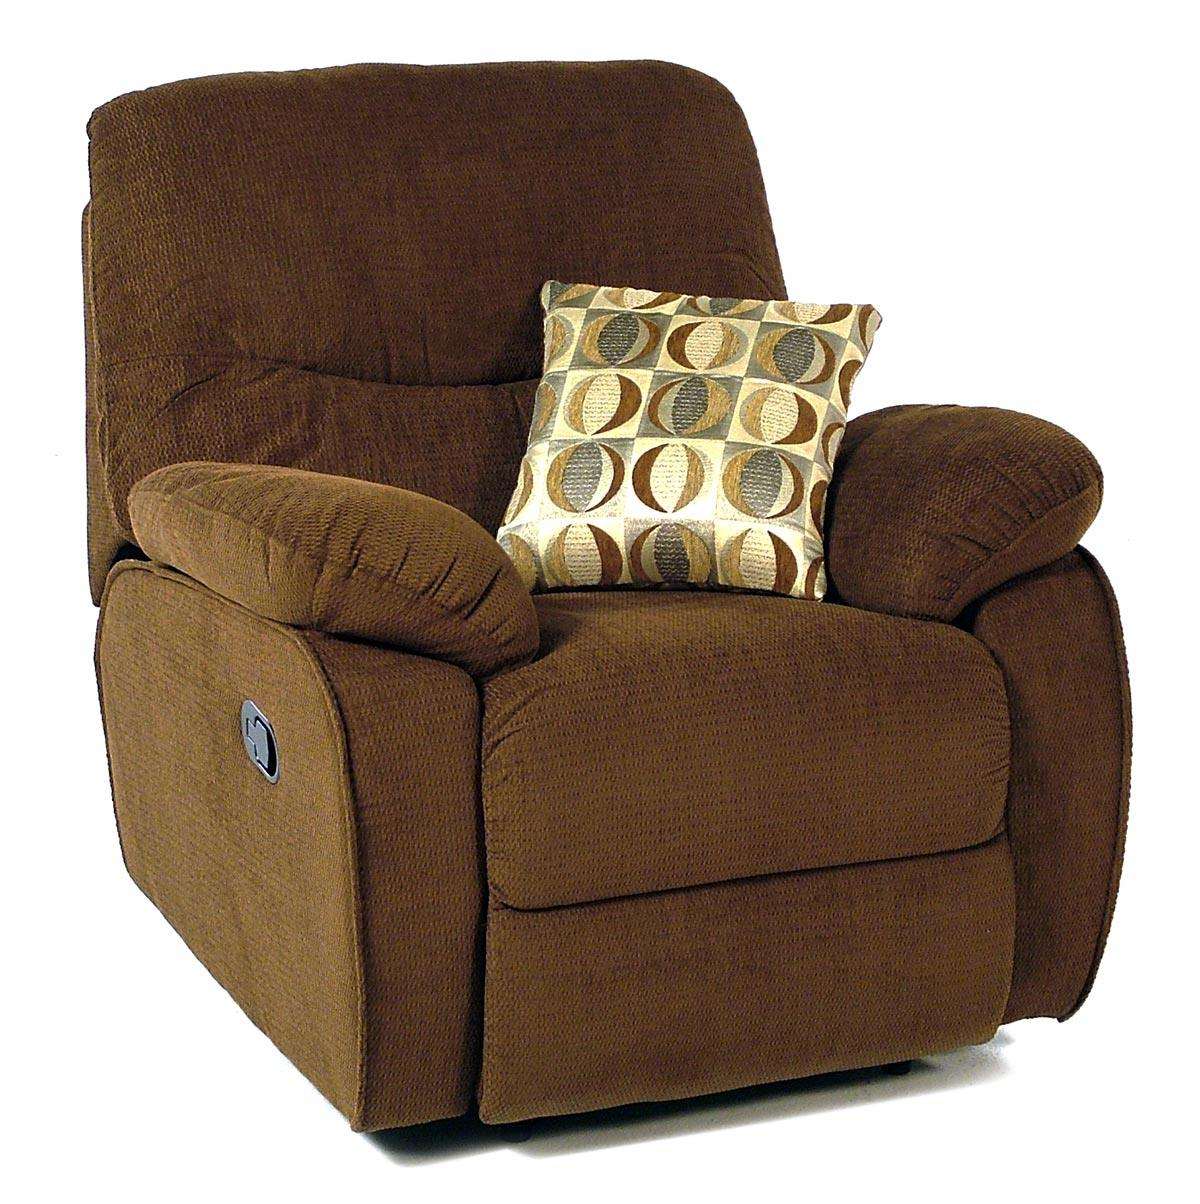 Madison Manor Taurus Casual Style Recliner - Item Number: 412-1